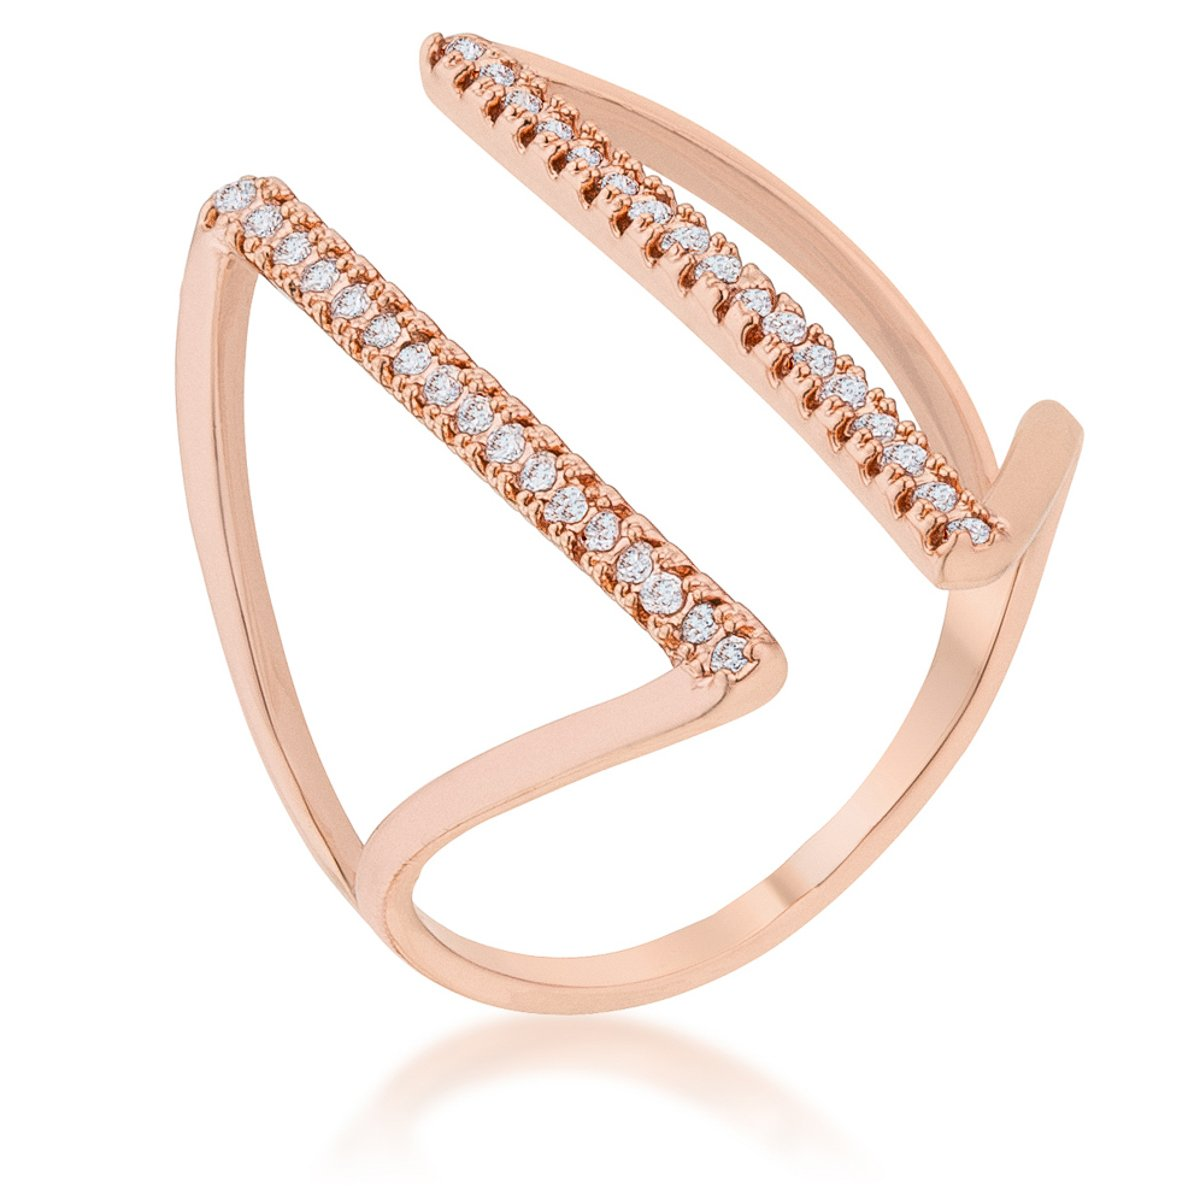 Jena 0.2ct CZ Rose Gold Delicate Parallel Ring - R08460A-C01